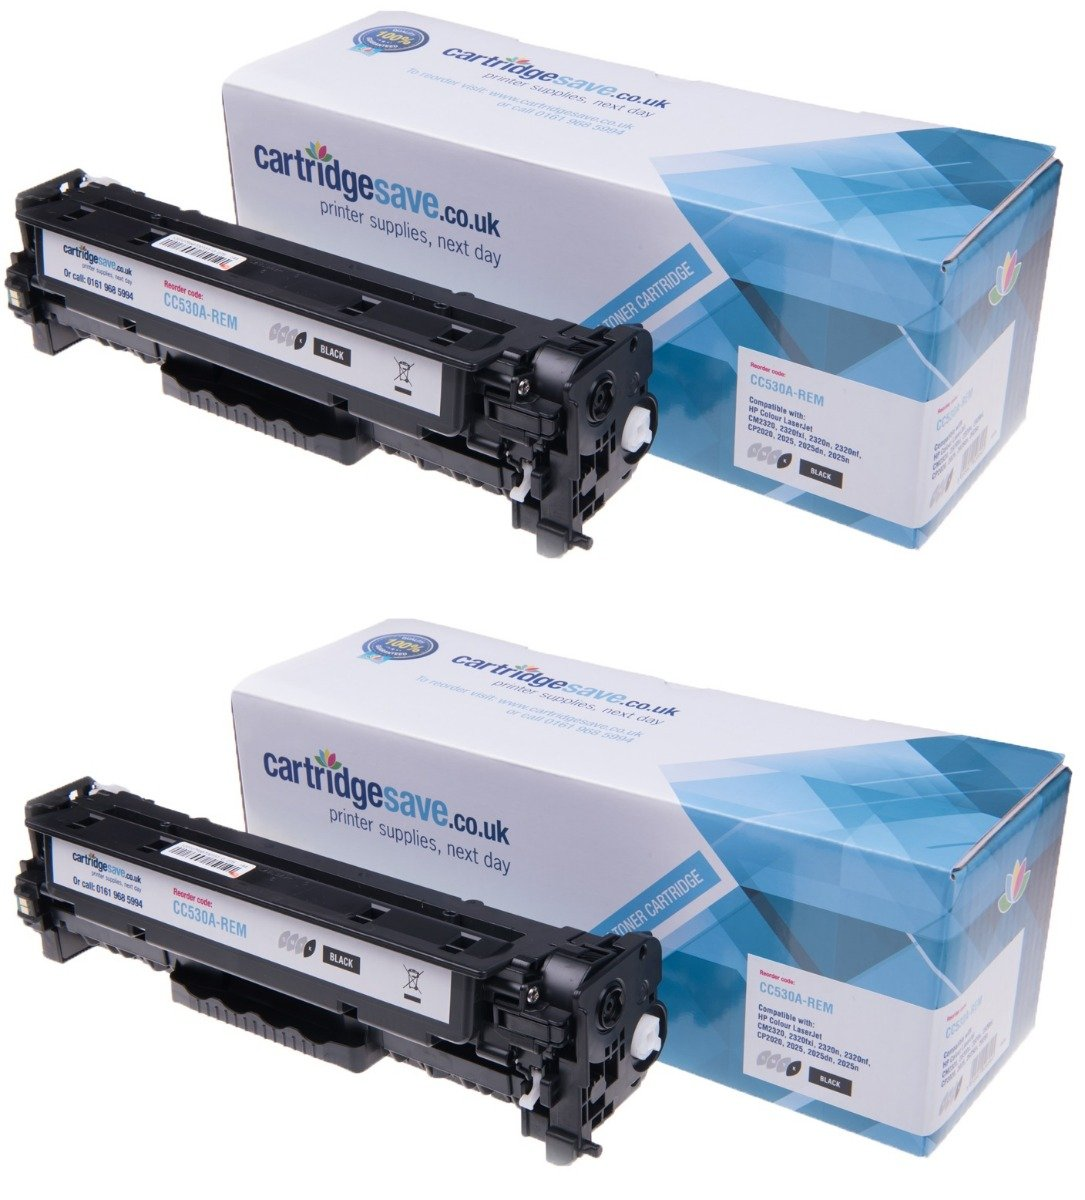 Compatible Black HP 304A Toner Cartridge Twin pack (HP CC530A)